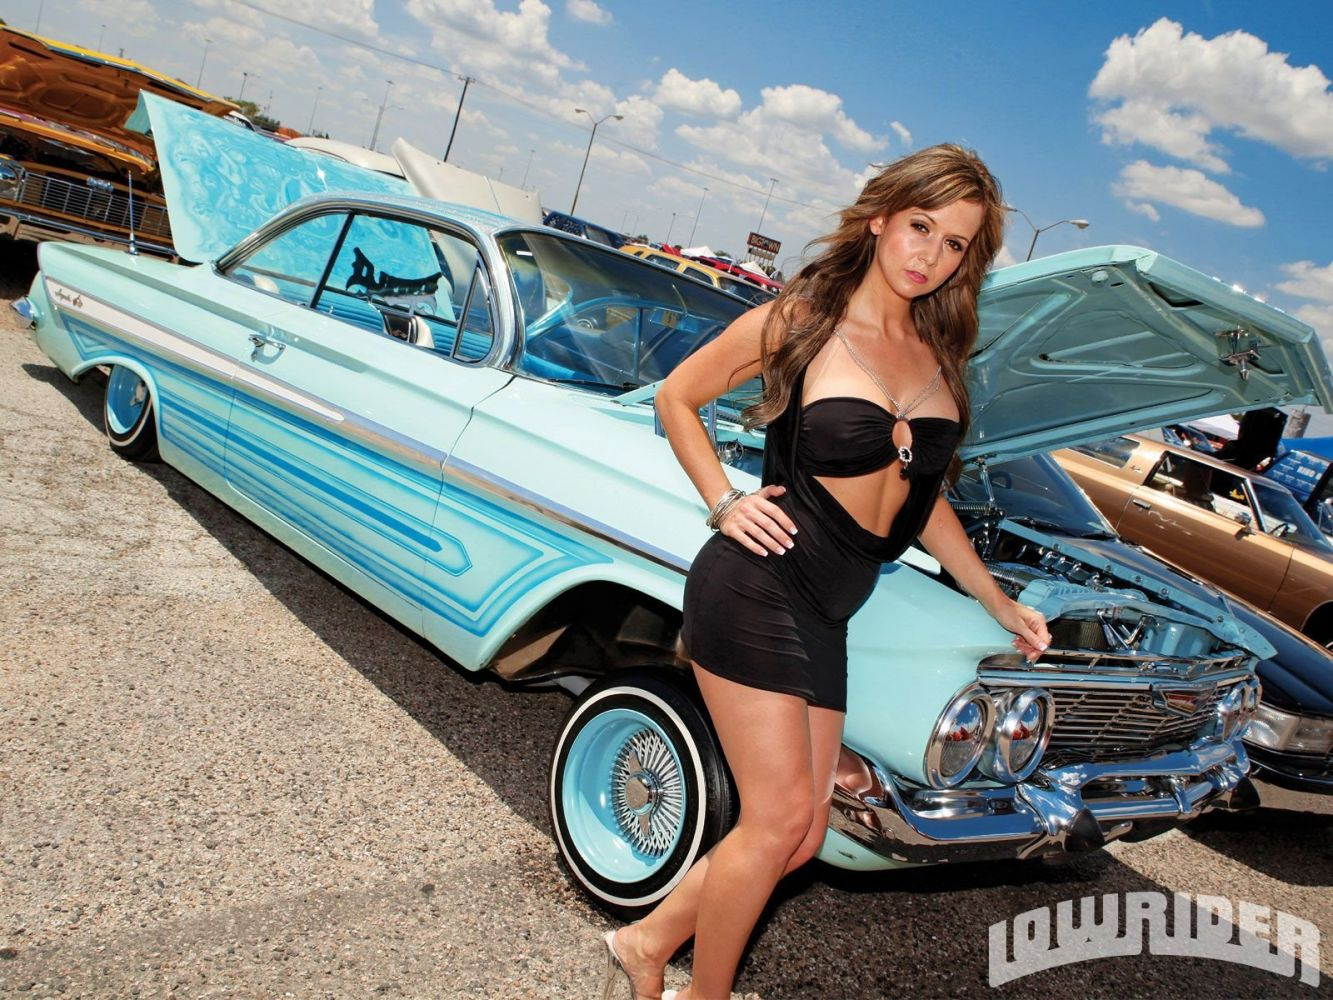 Nude models with lowriders